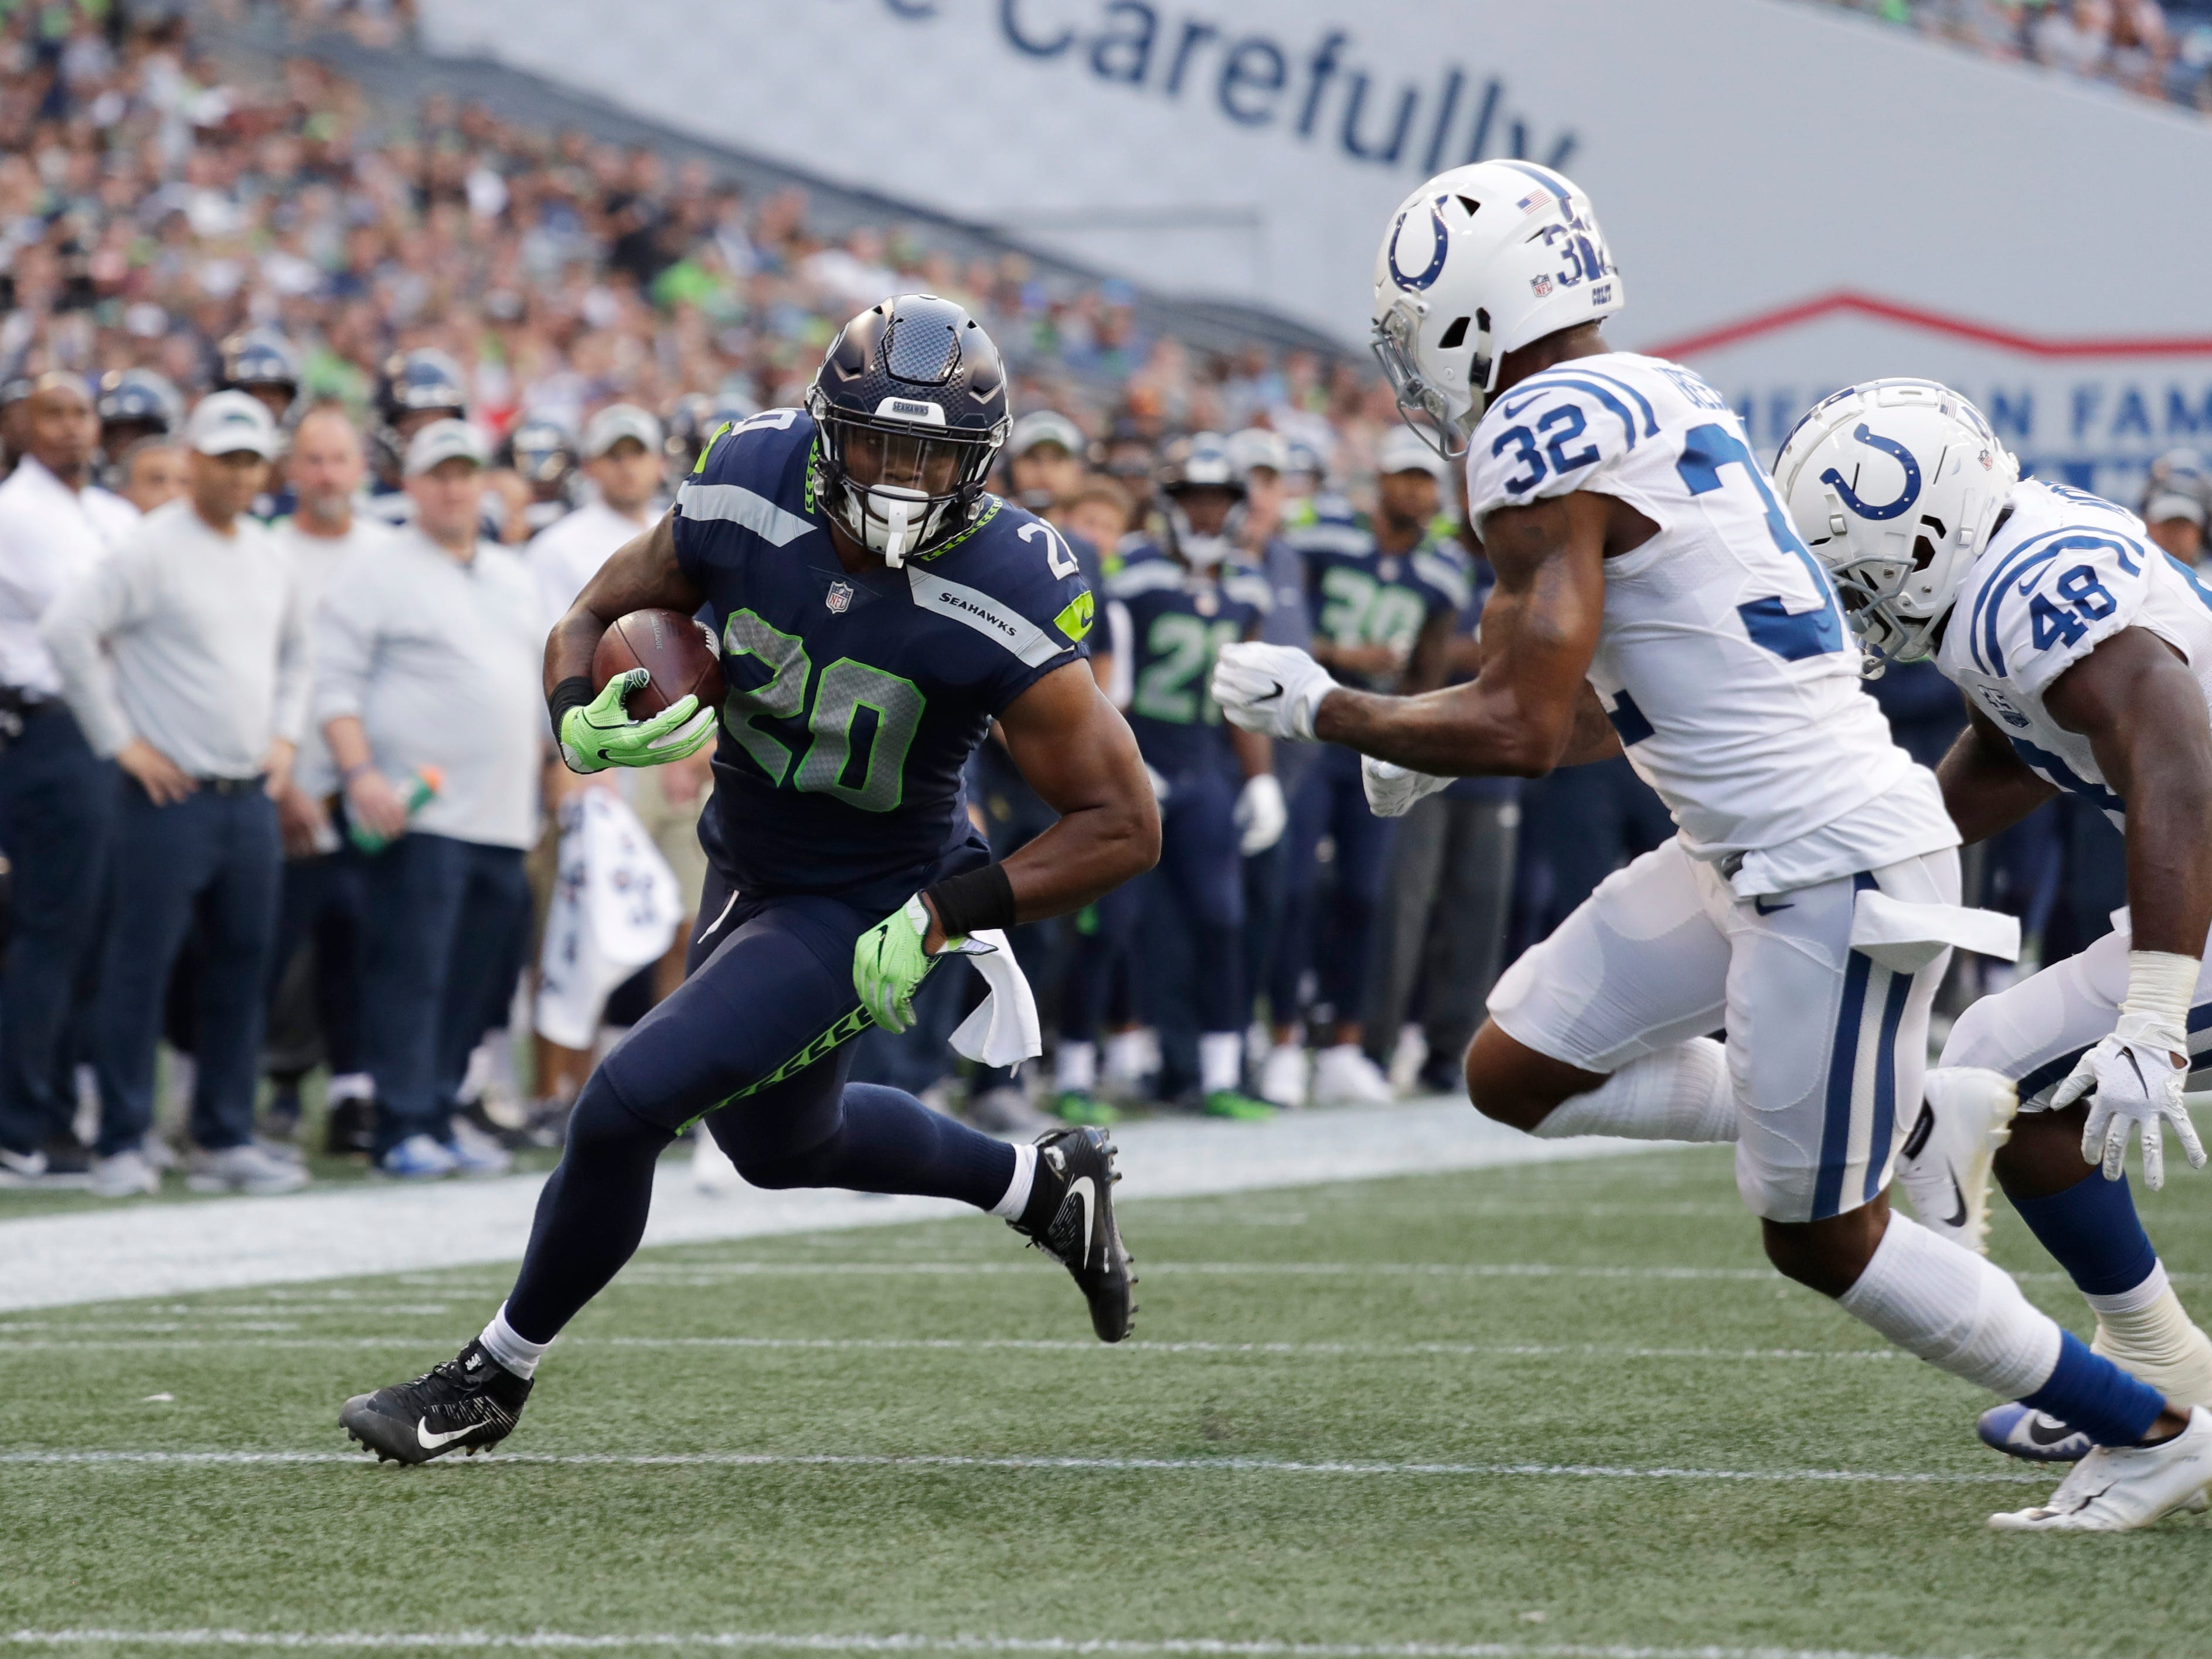 Seattle Seahawks running back Rashaad Penny (20) rushes past Indianapolis Colts defensive back T.J. Green (32) during the first half of an NFL football preseason game, Thursday, Aug. 9, 2018, in Seattle. (AP Photo/Elaine Thompson)